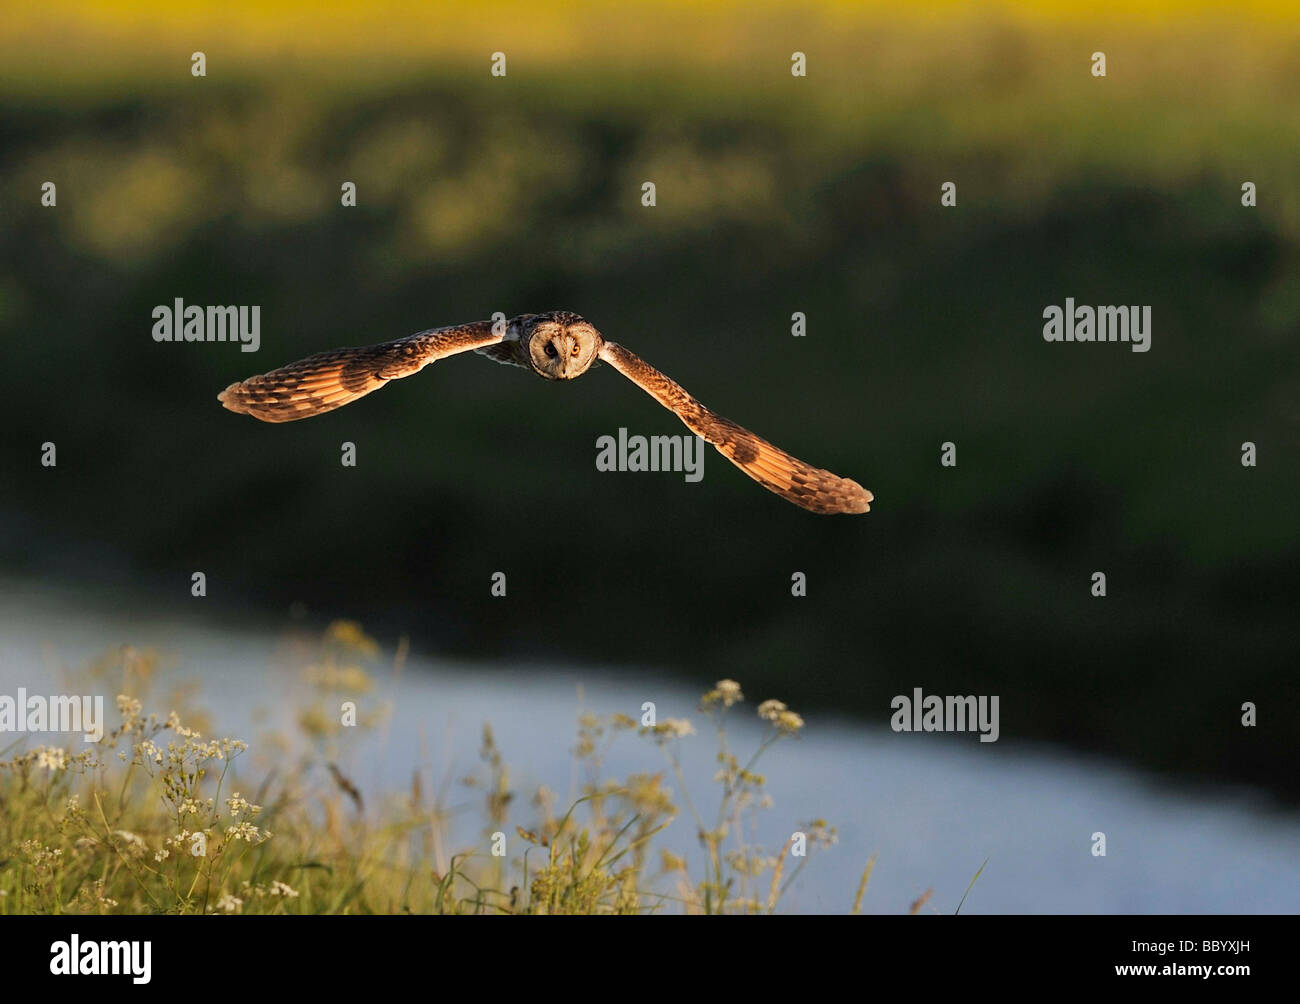 Short Eared Owl. Asio flammeus hunting. French: Hibou des marais German: Sumpfohreule Spanish: Búho campestre - Stock Image